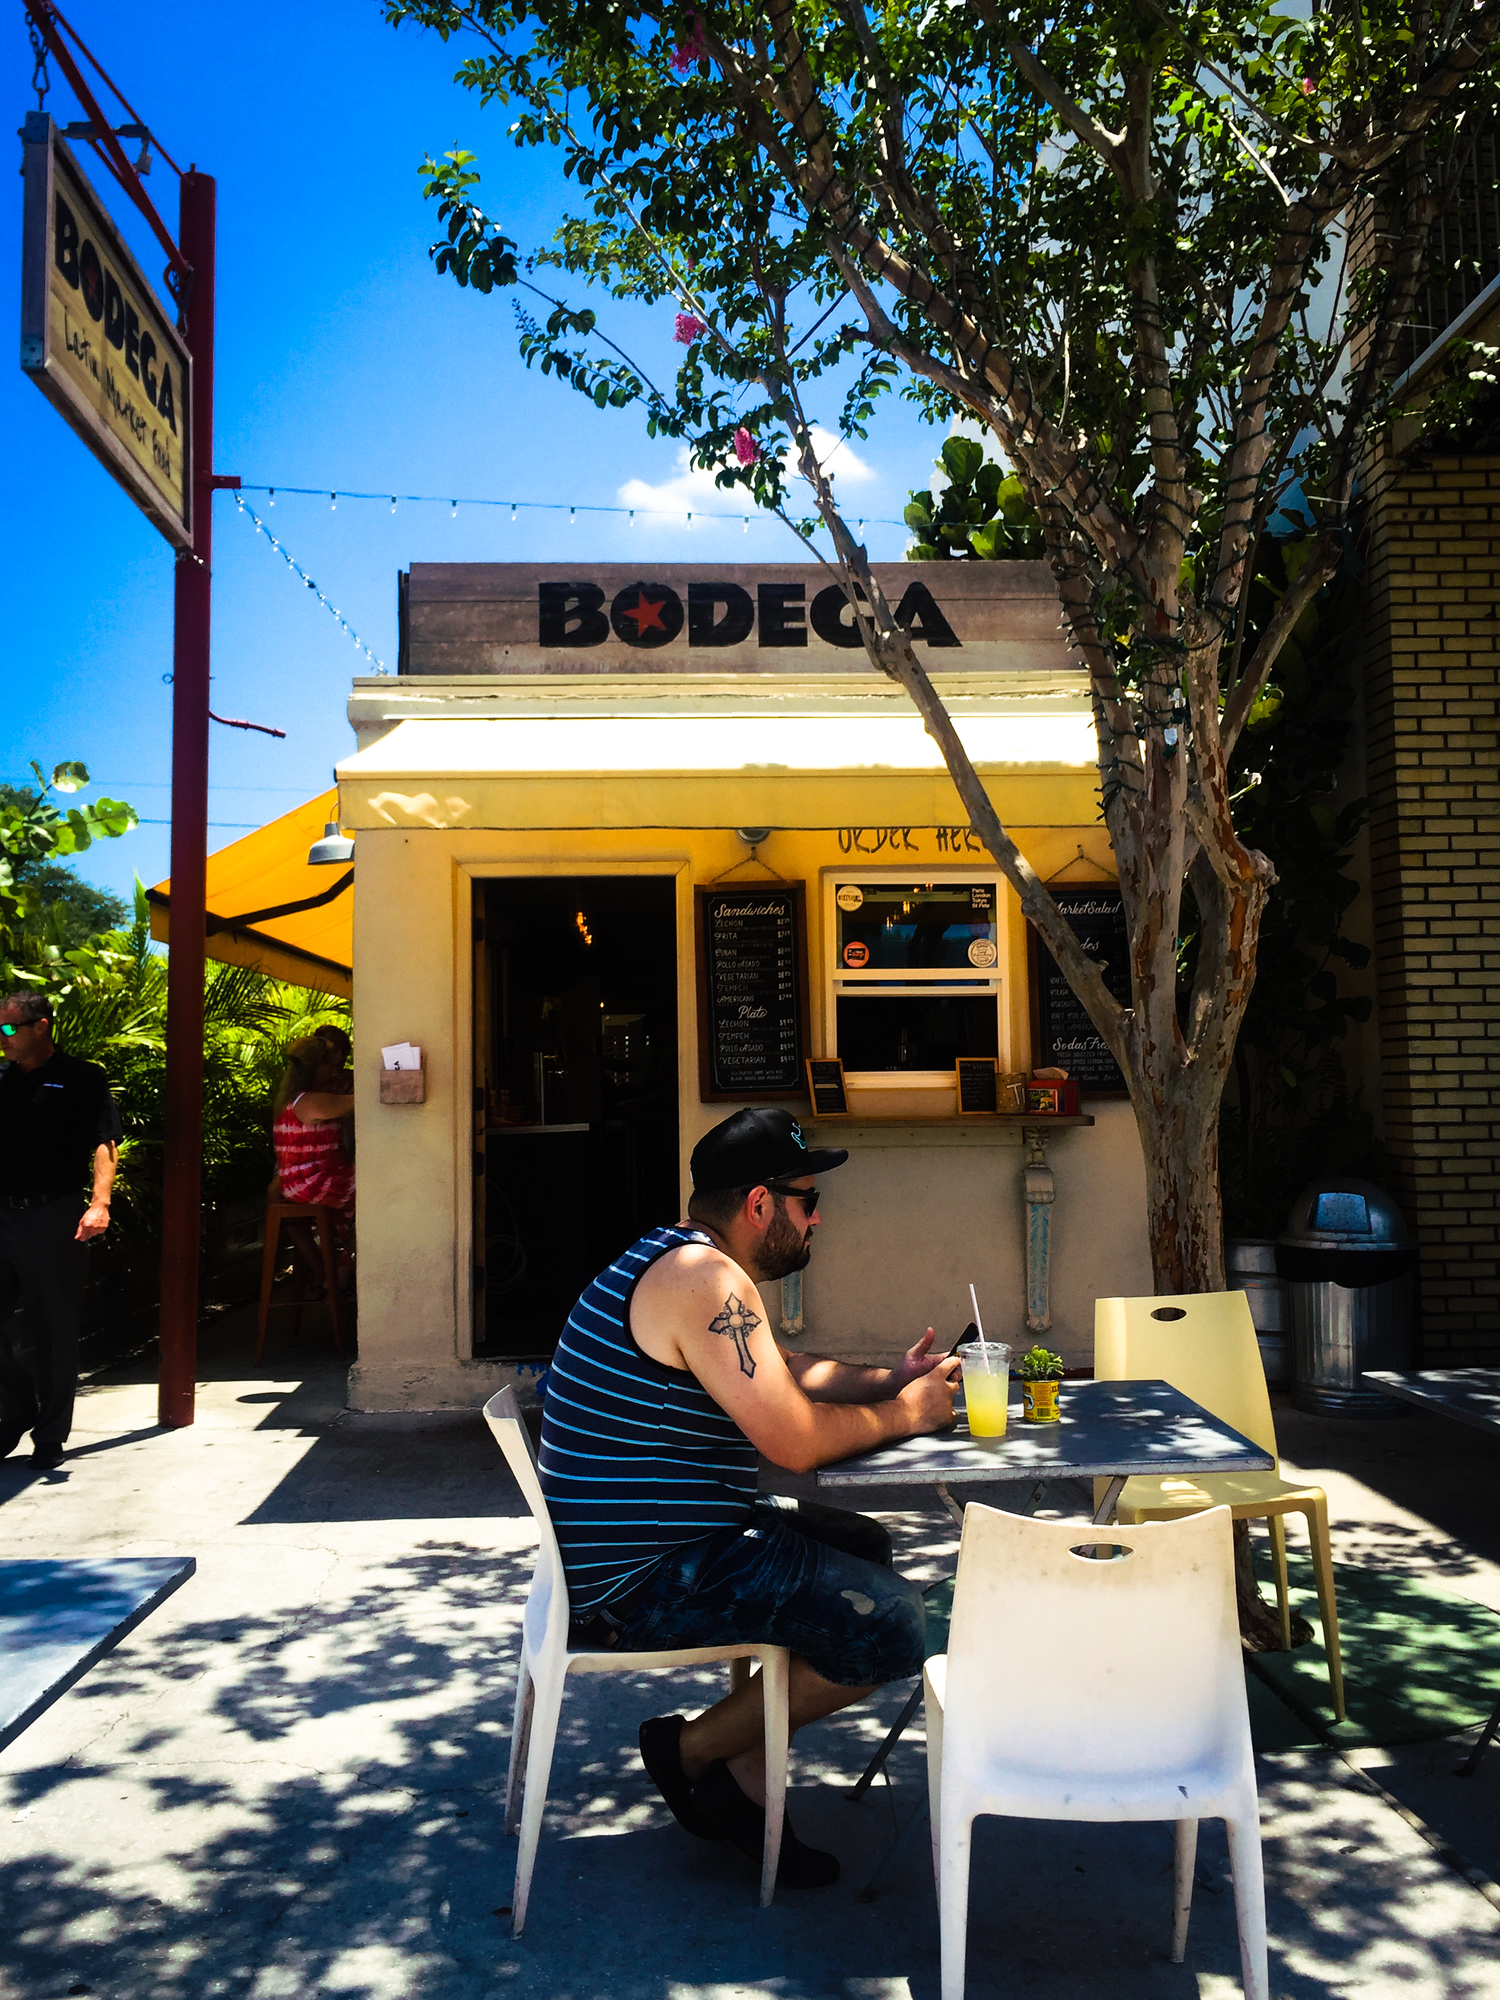 Bodega is just one of the amazing restaurants in St.Petersburg you'll want to visit.